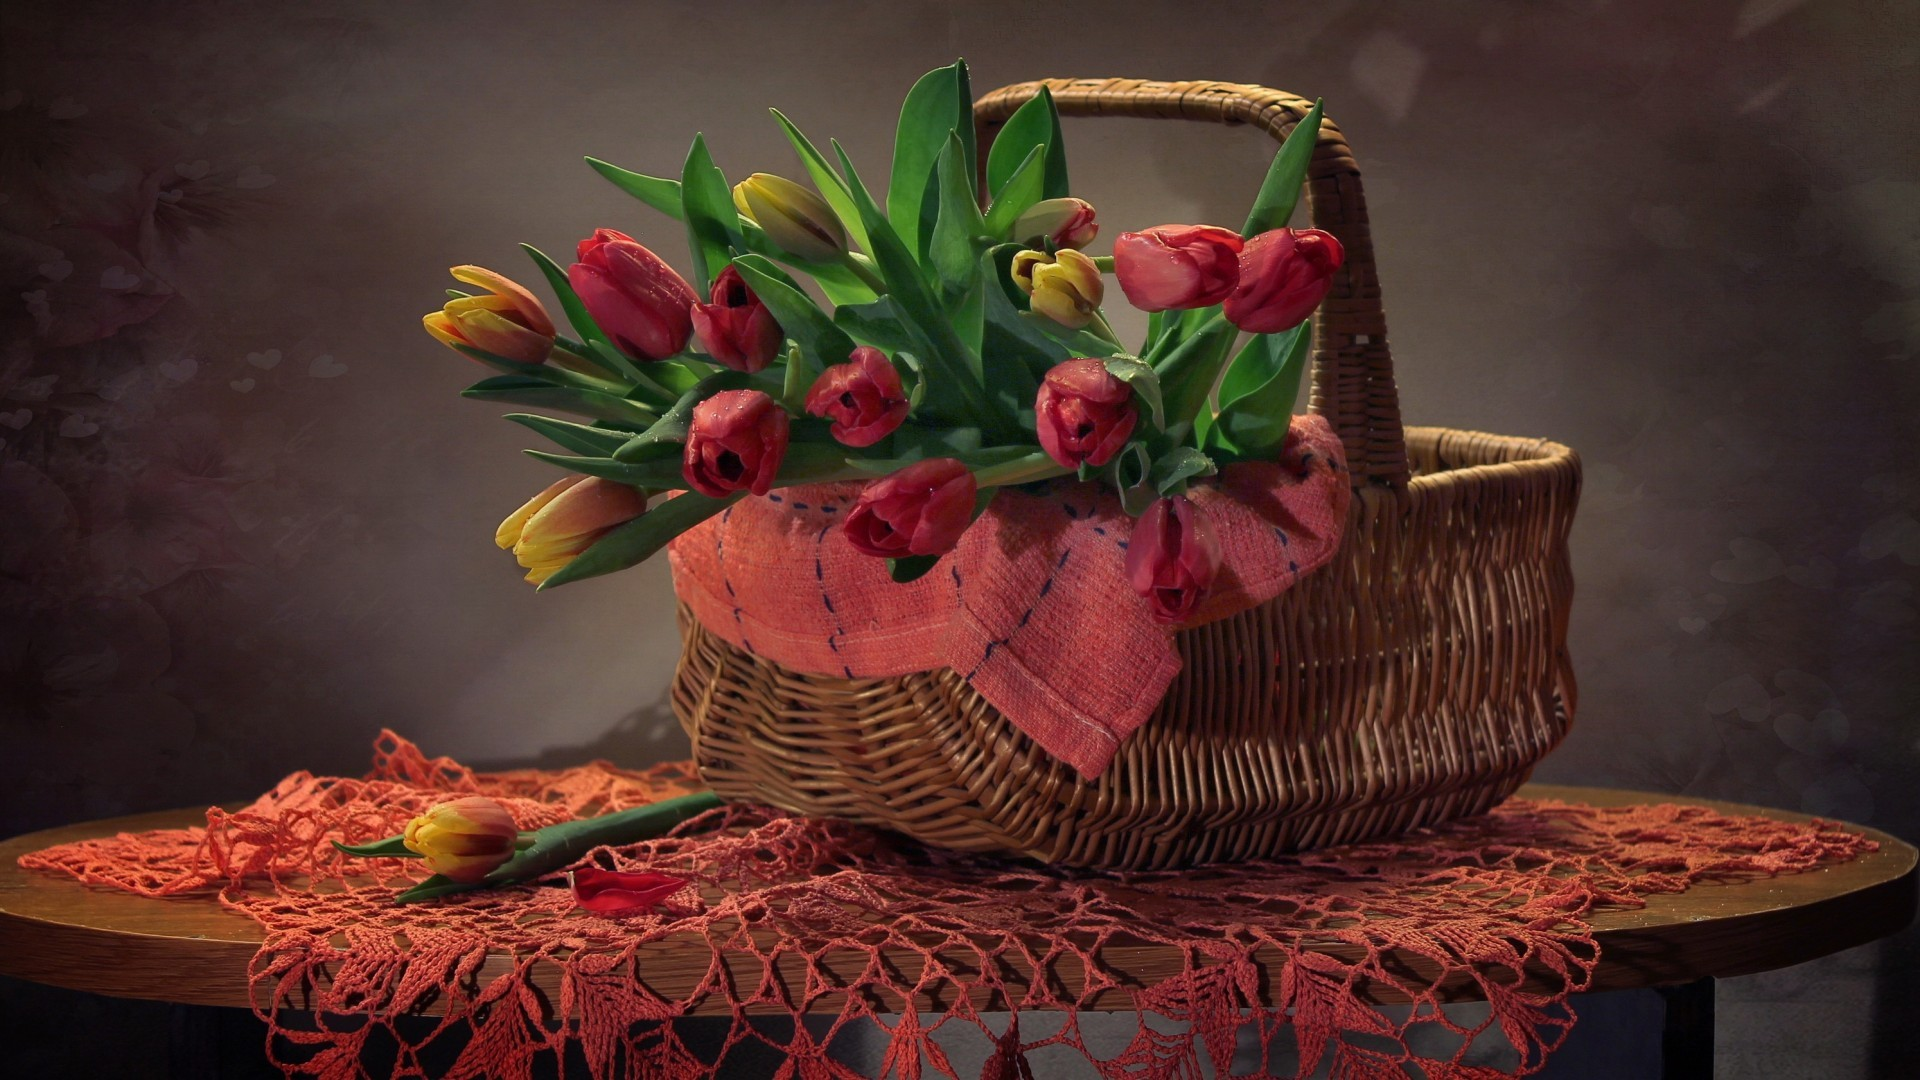 Basket With Flowers background